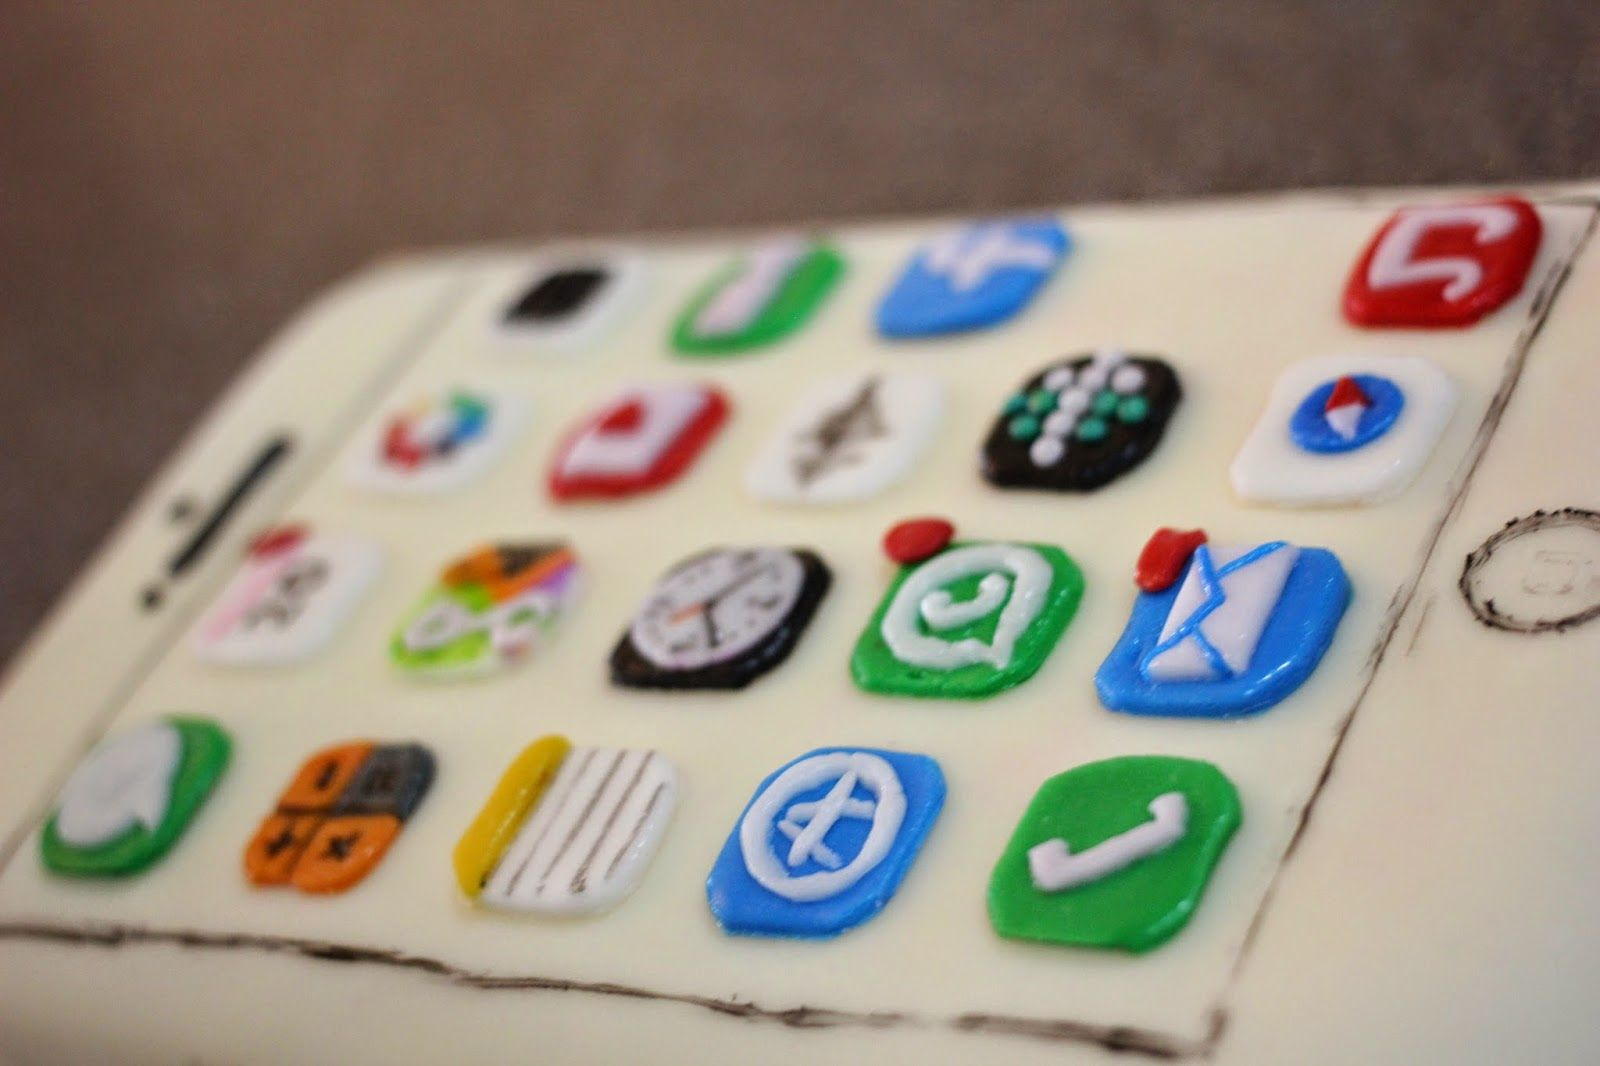 iPhone 6 plus cake launched